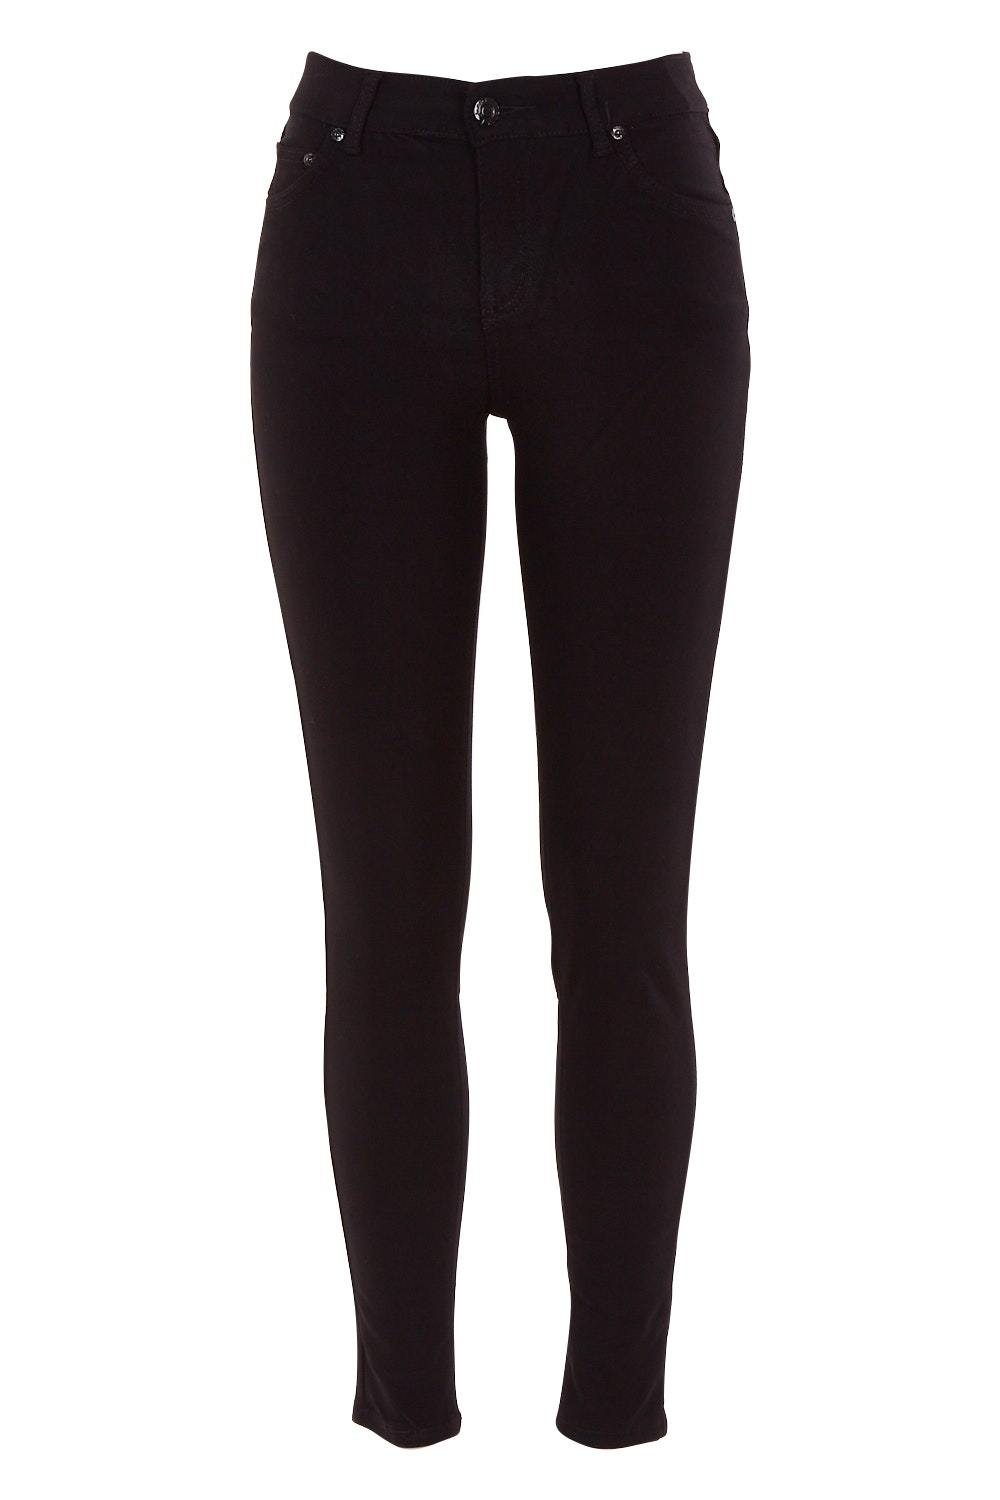 Wakee Black Skinny Leg Jean | Buy Online at Weekends